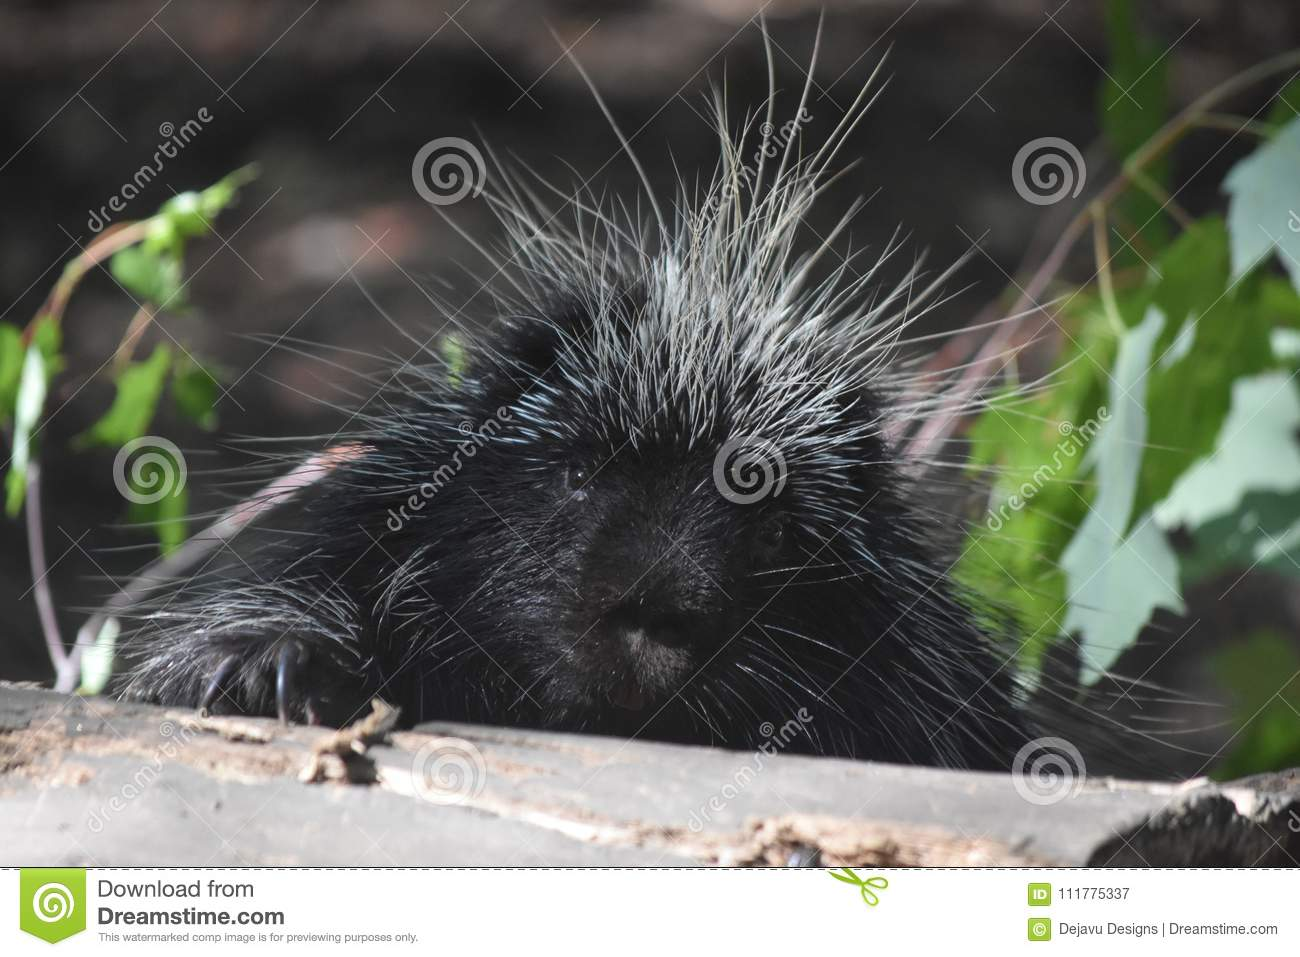 Sweet black and white quilled porcupine resting on a log